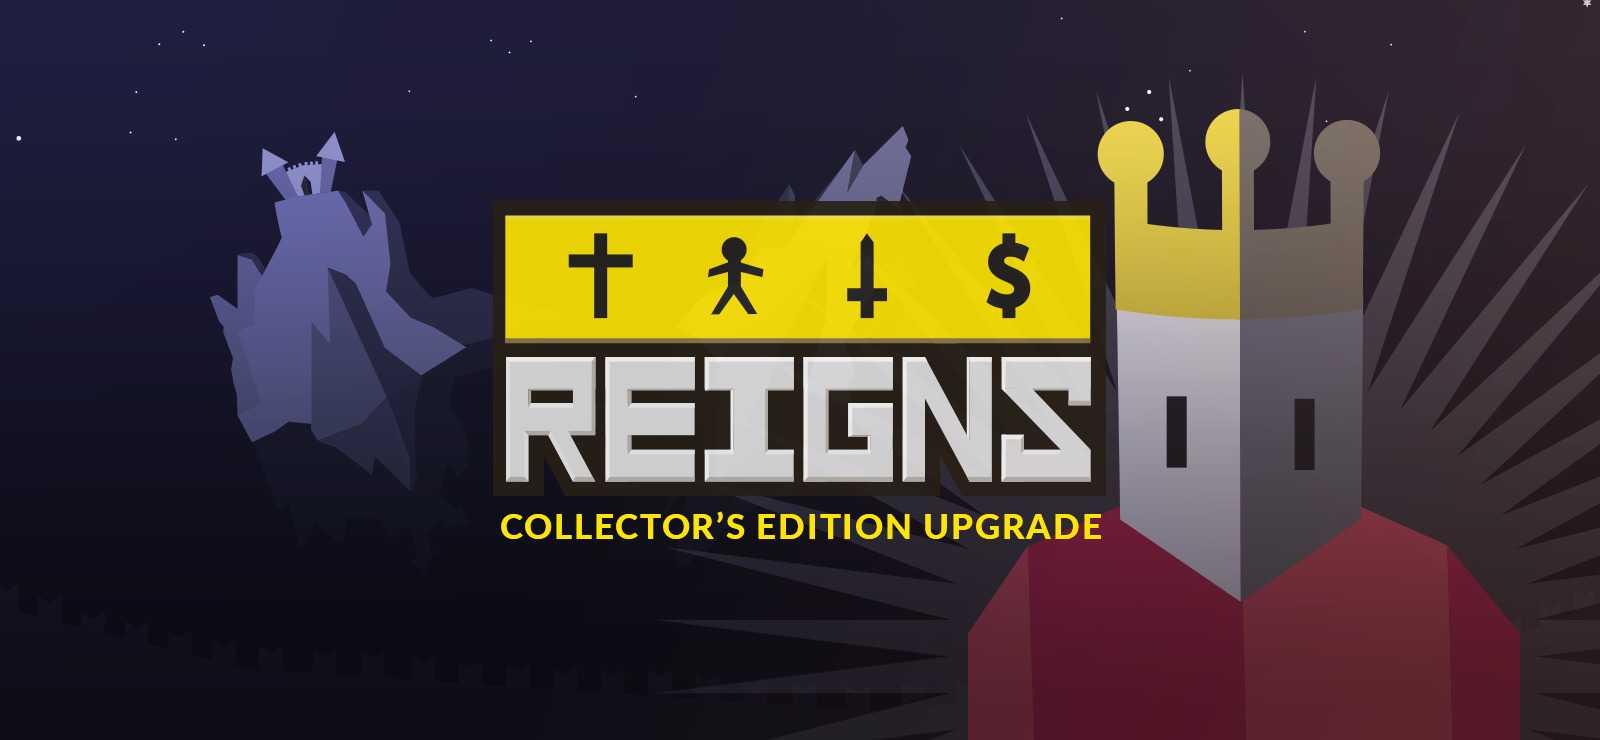 Reigns Collector's Edition Upgrade